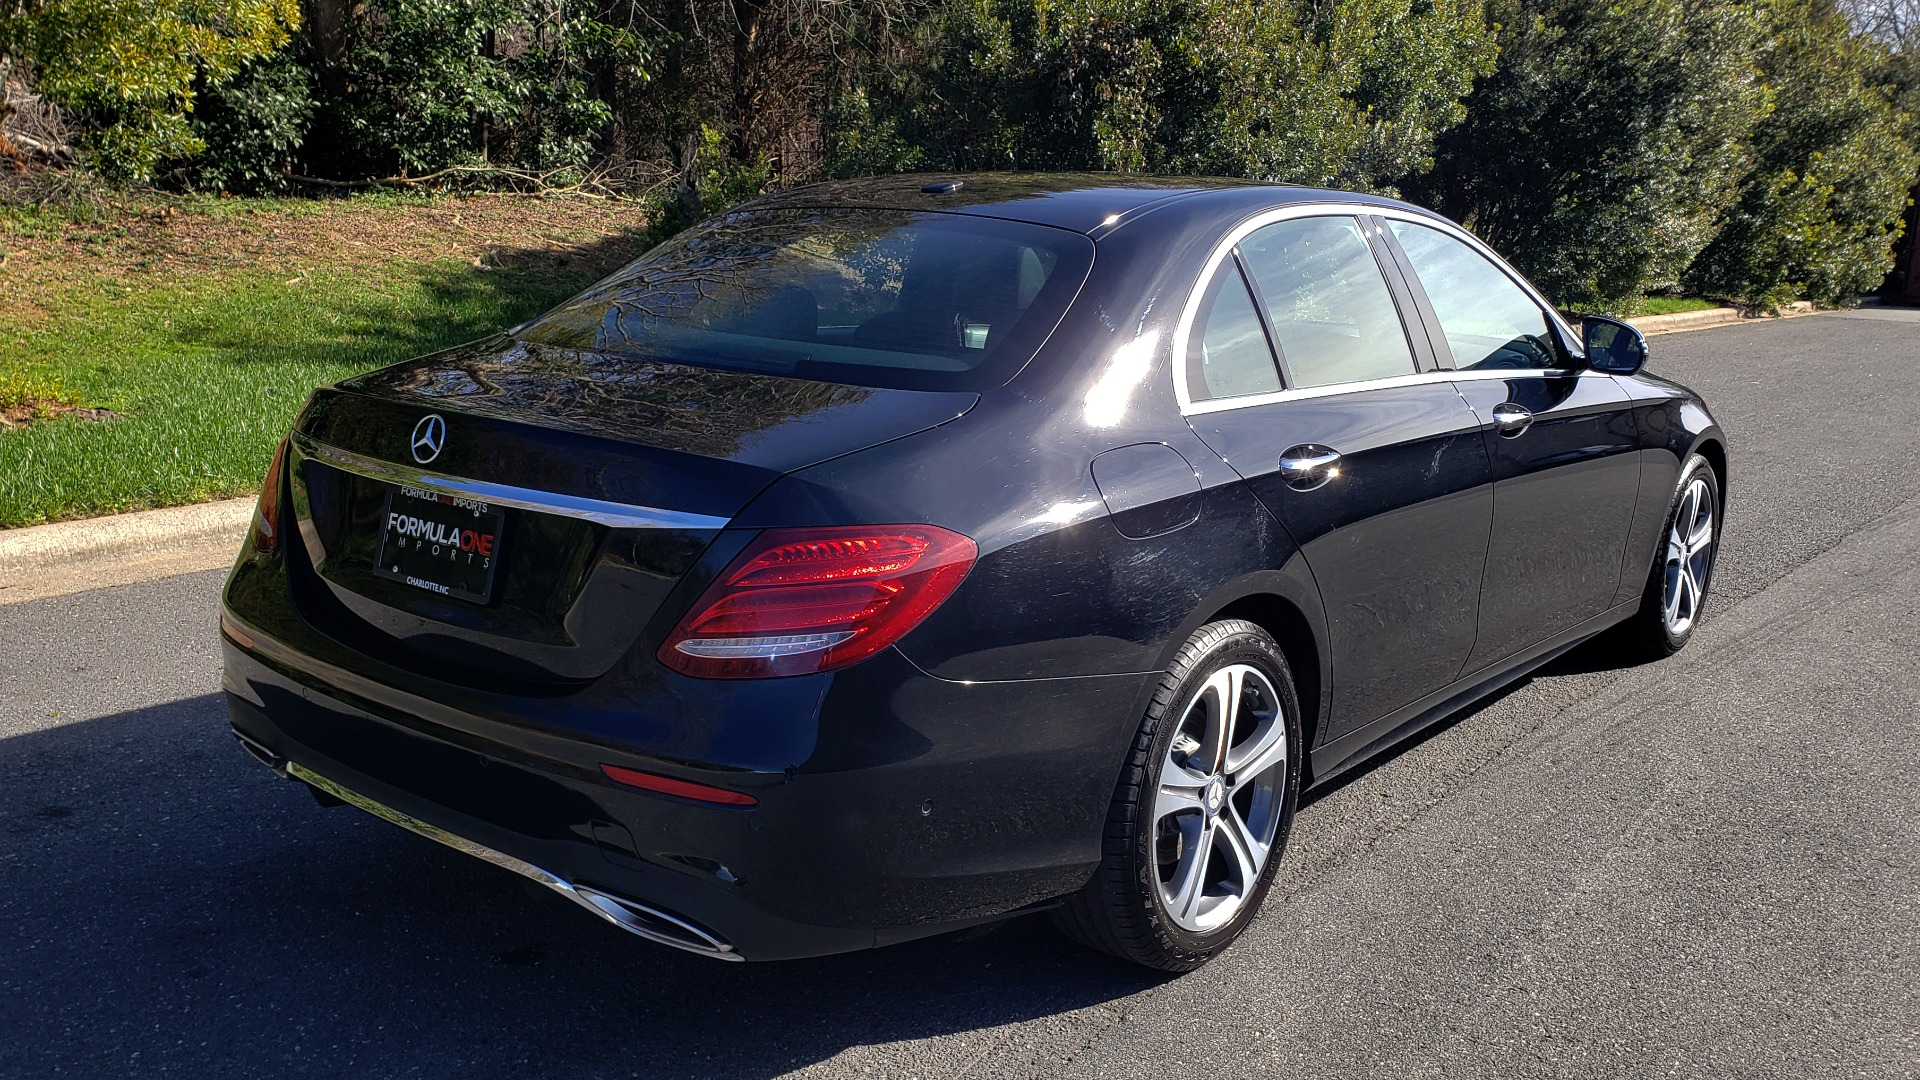 Used 2017 Mercedes-Benz E-CLASS E 300 PREMIUM / NAV / SUNROOF / BURMESTER / HTD STS / REARVIEW for sale $29,995 at Formula Imports in Charlotte NC 28227 6